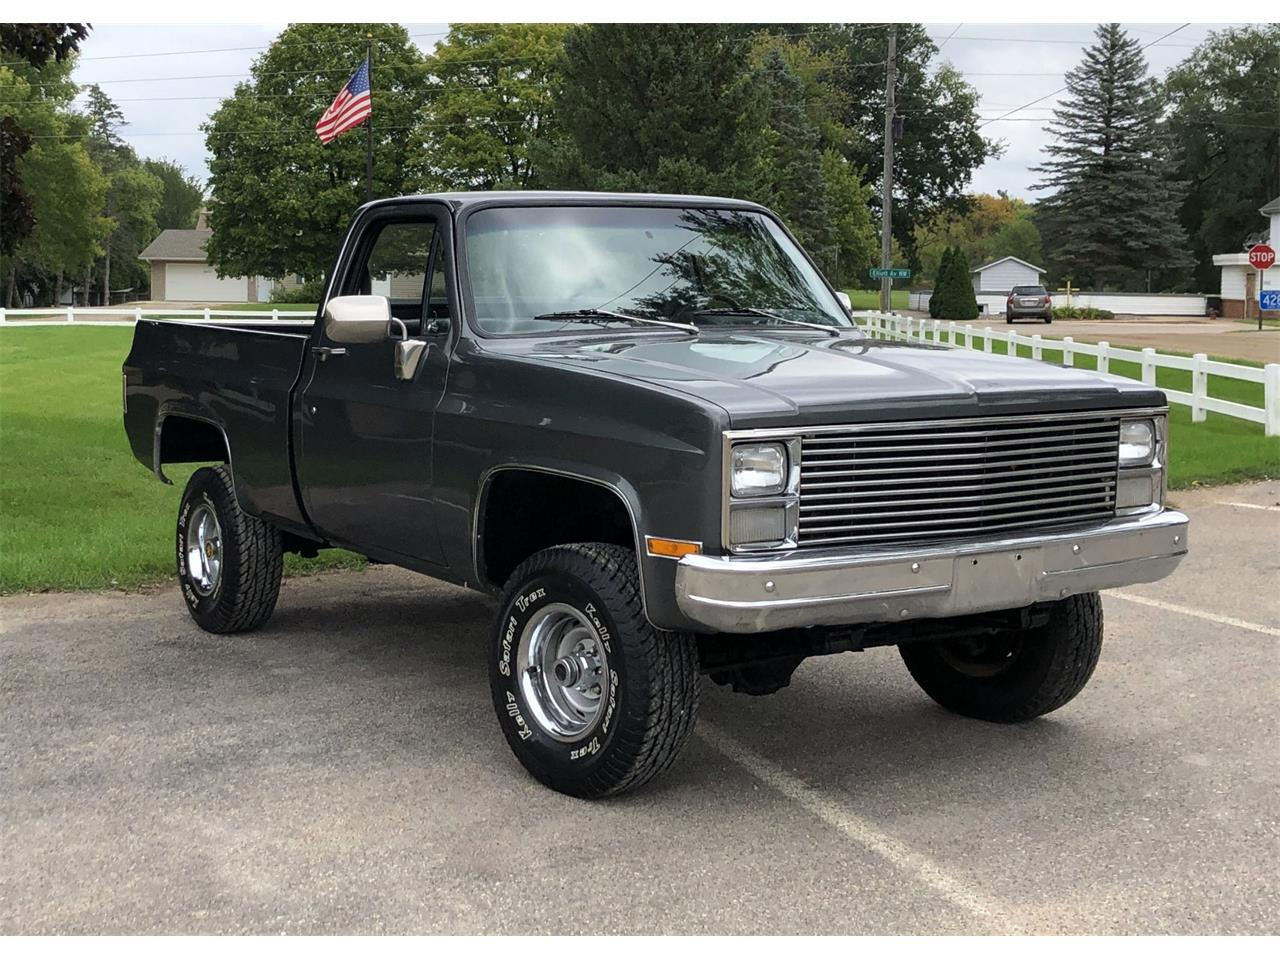 Large Picture of '83 Chevrolet K-10 located in Maple Lake Minnesota - $17,950.00 - R2IJ